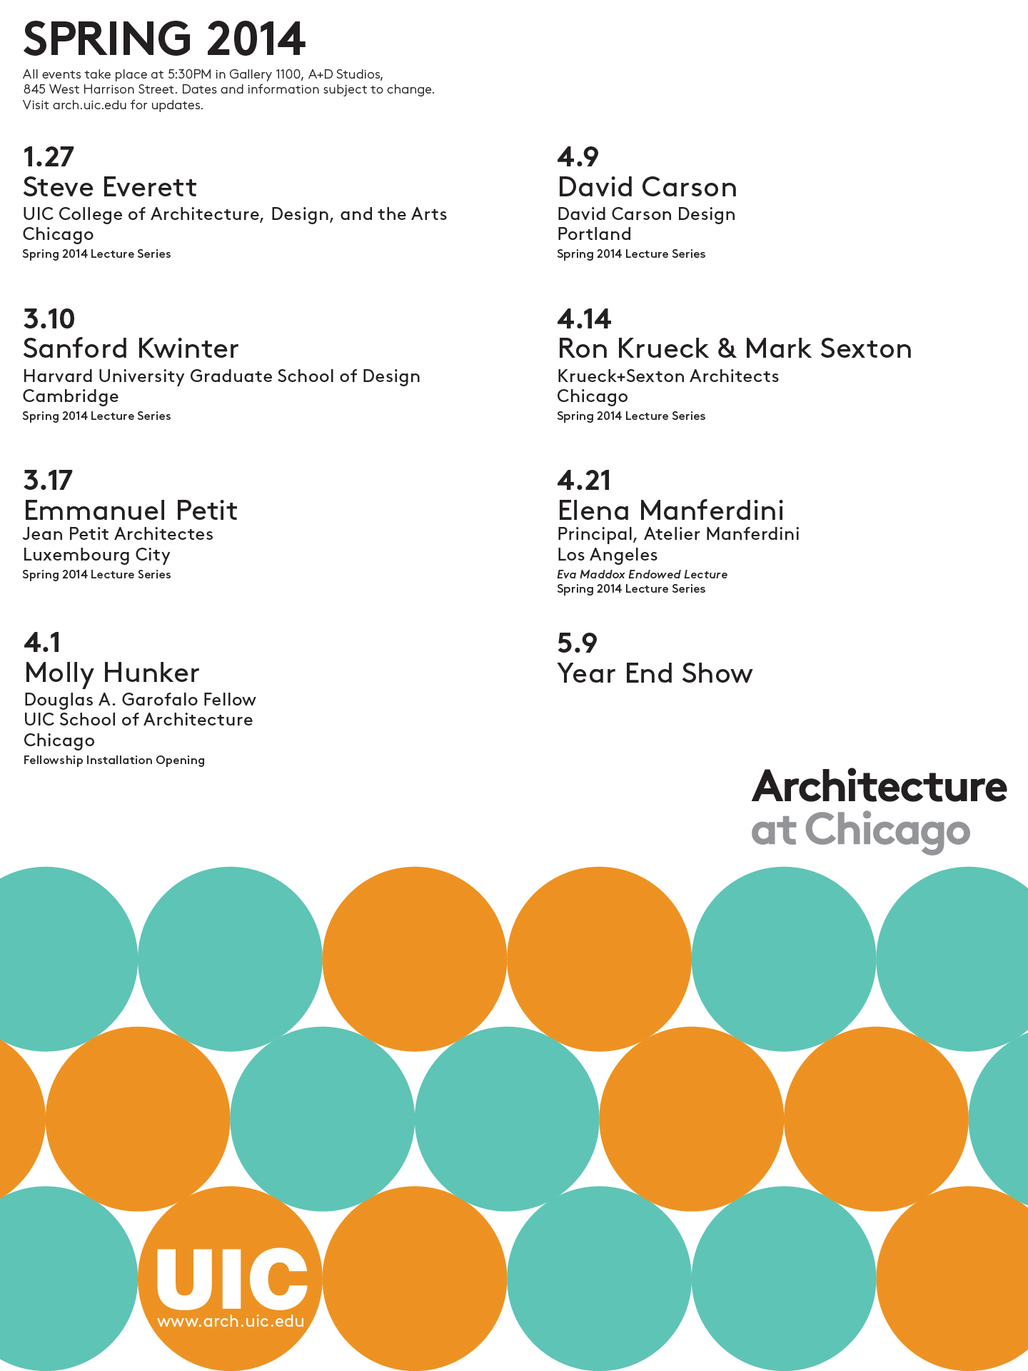 Spring 14 Lecture Series at UIC School of Architecture. Image courtesy of UIC School of Architecture.